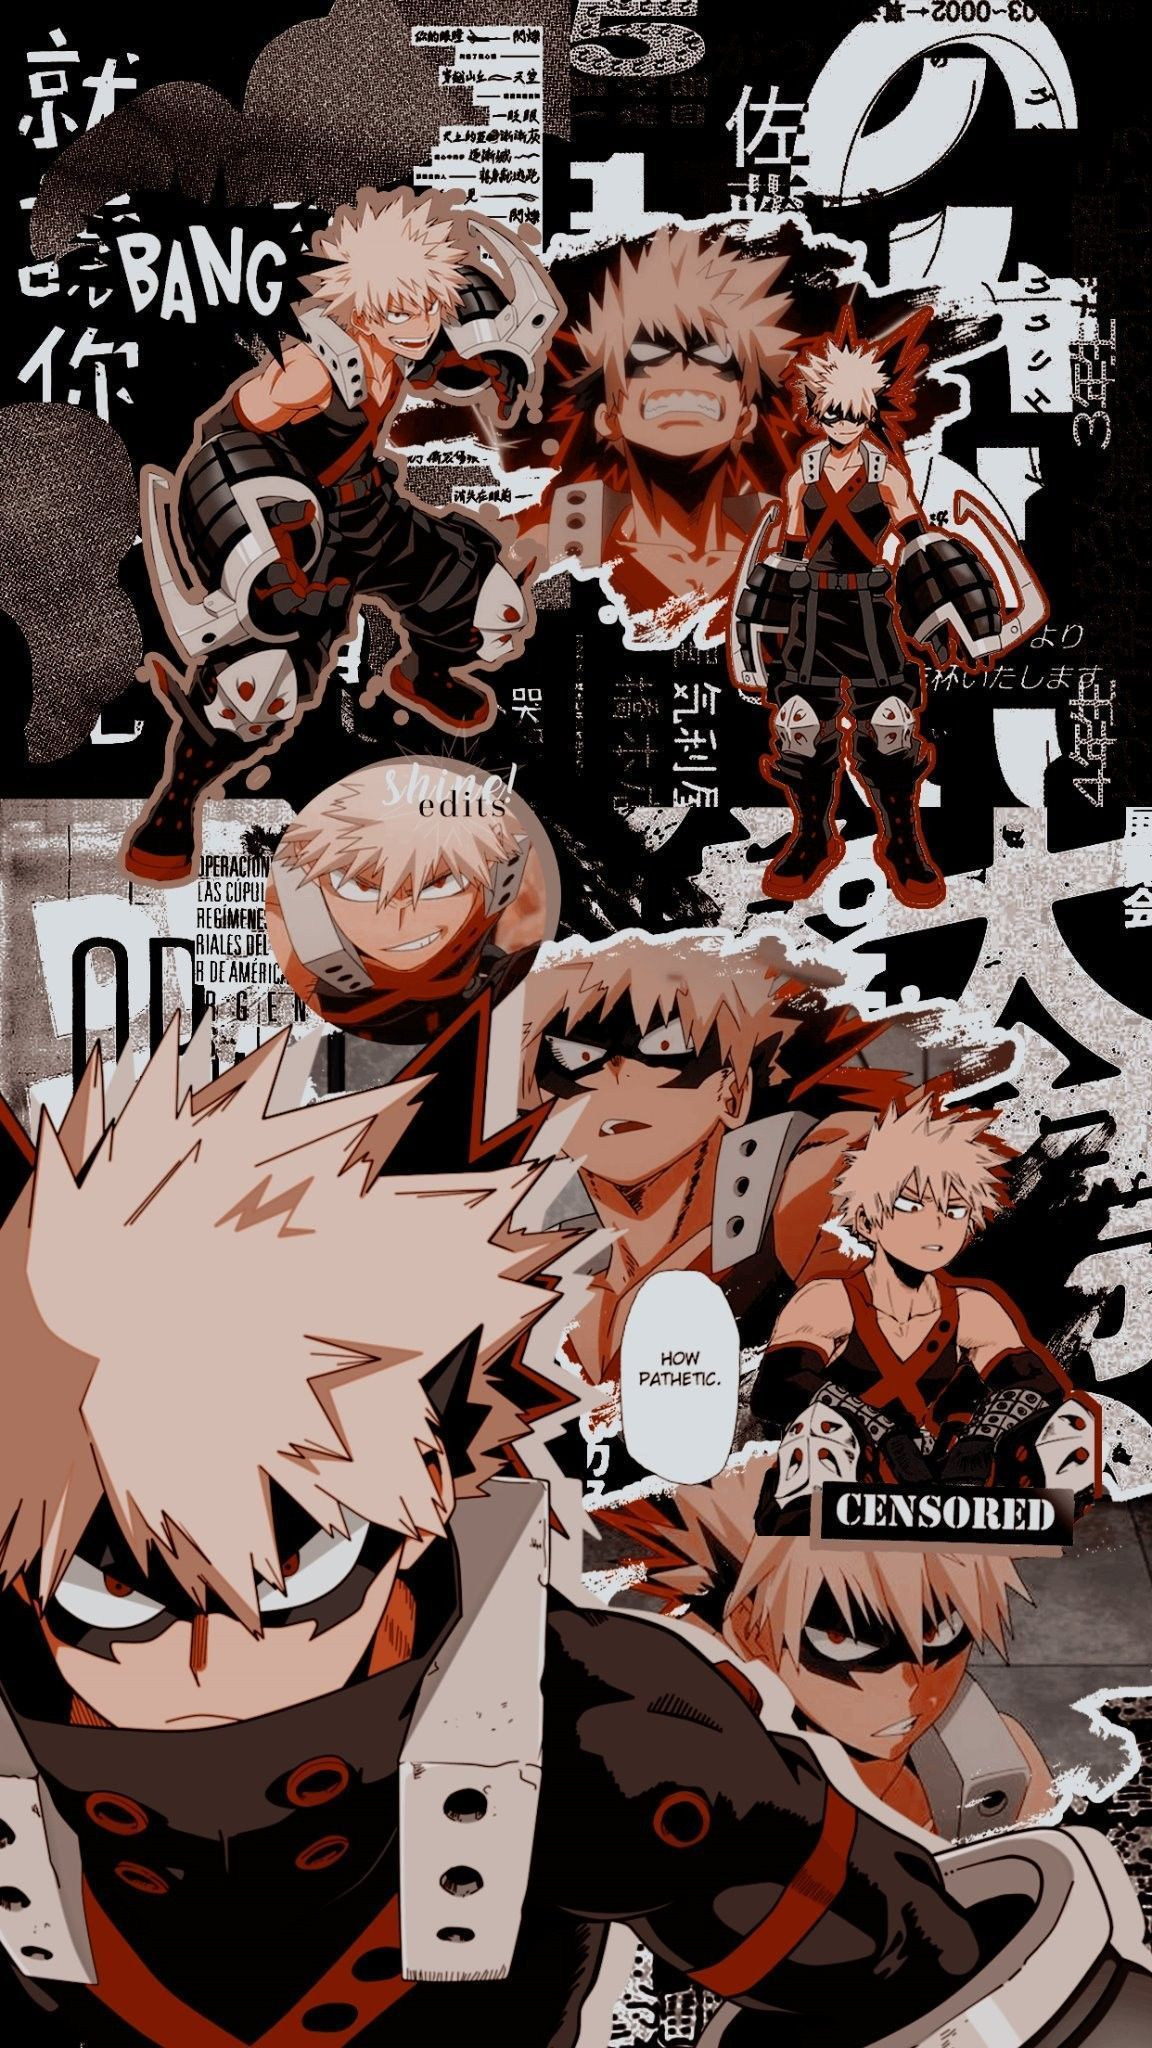 Aesthetic Anime Wallpapers Bakugou Anime Wallpaper Hd